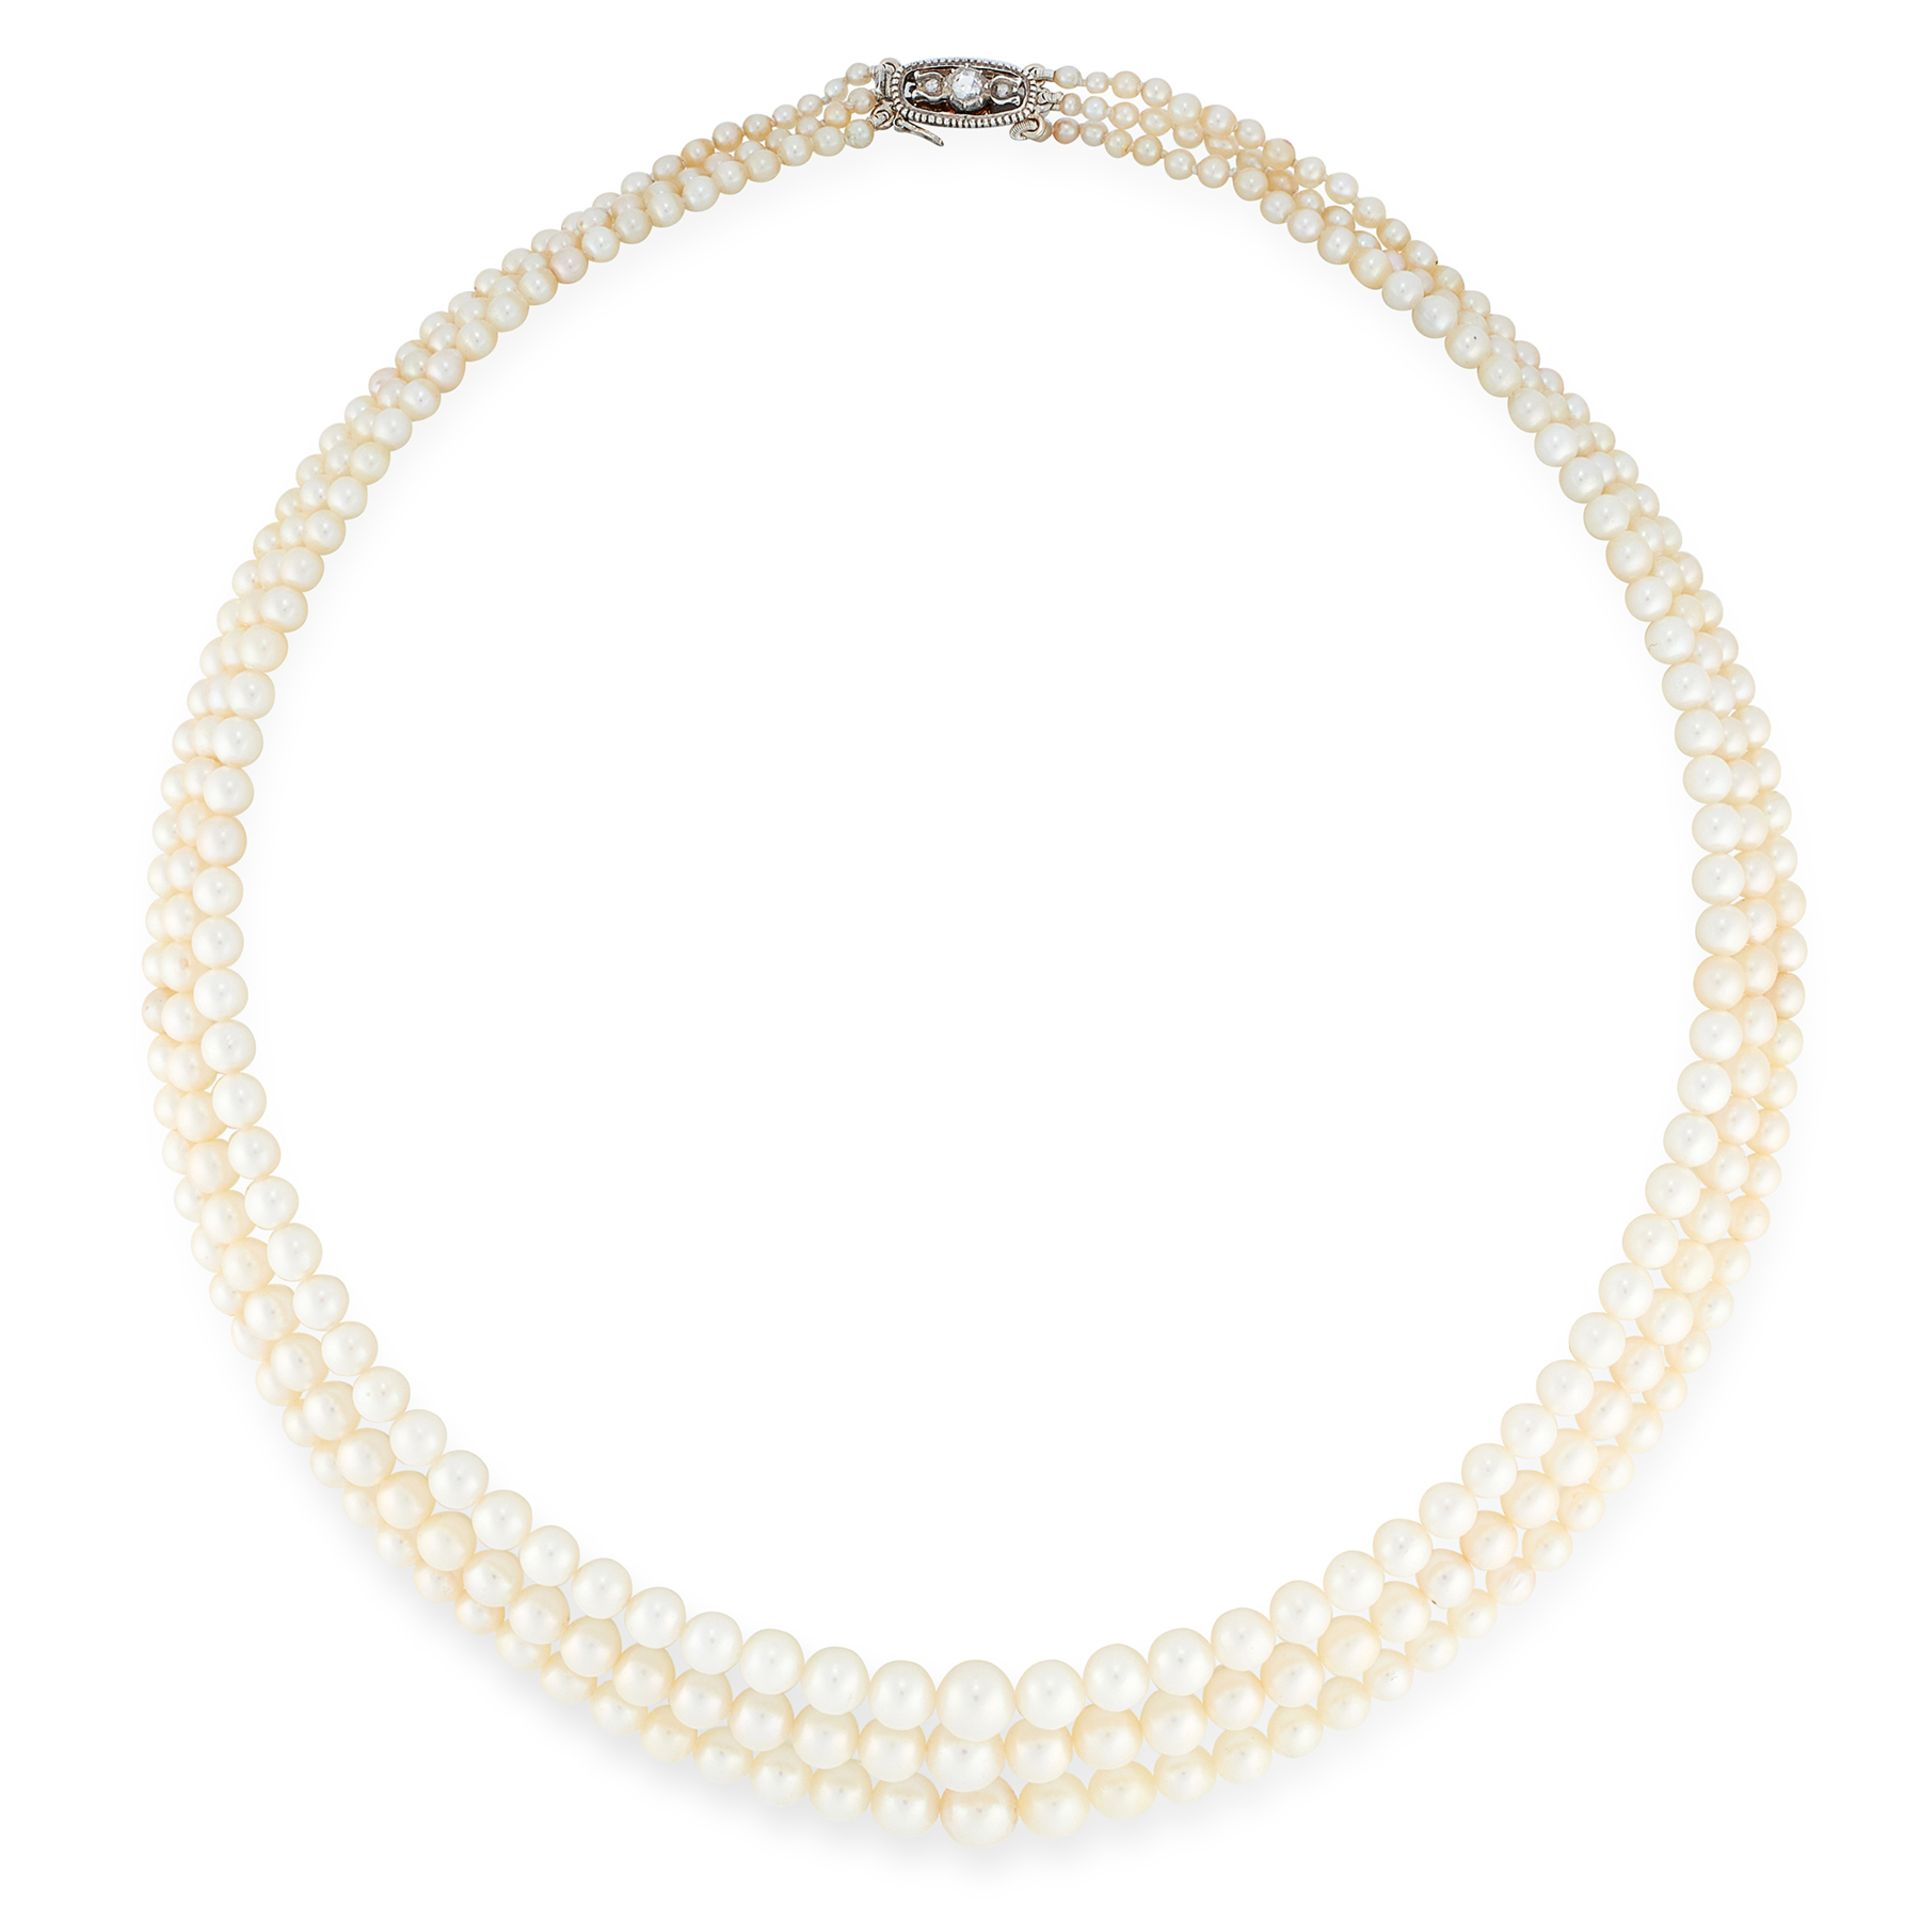 A PEARL AND DIAMOND NECKLACE in yellow gold and silver, comprising three rows of graduated pearls